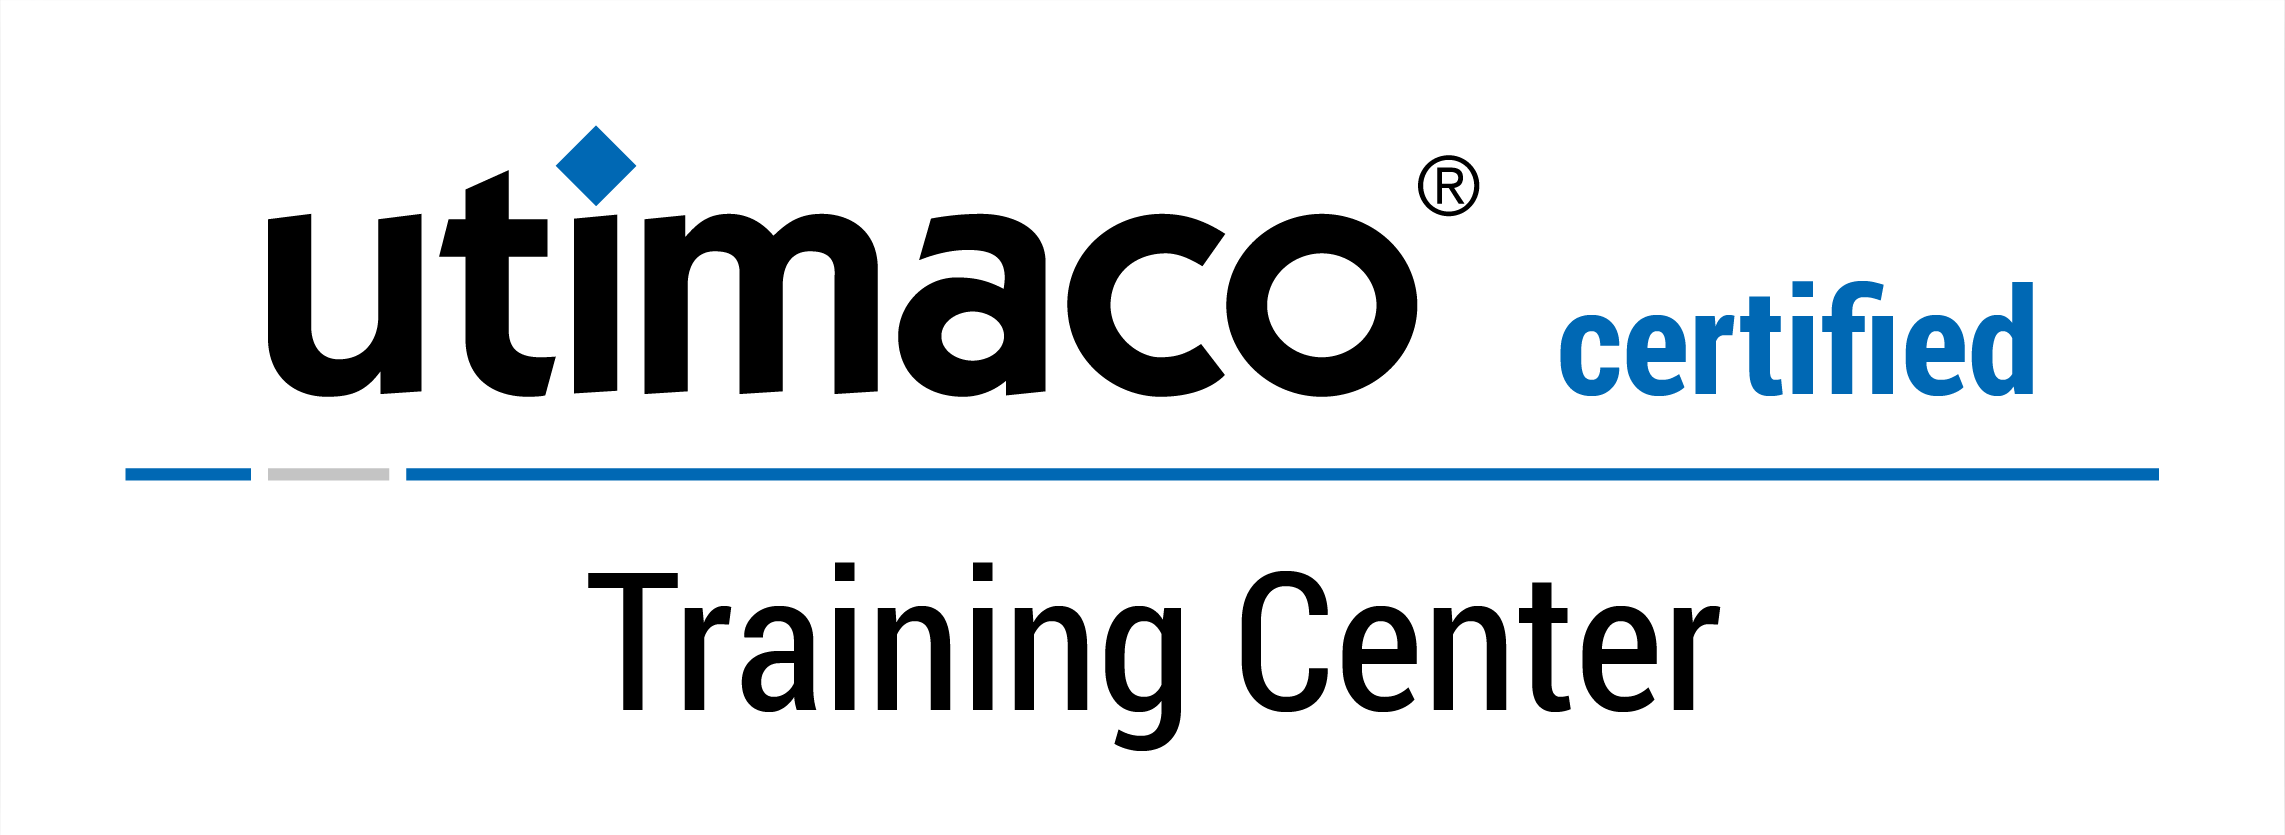 Utimaco Logo Certified Training Center